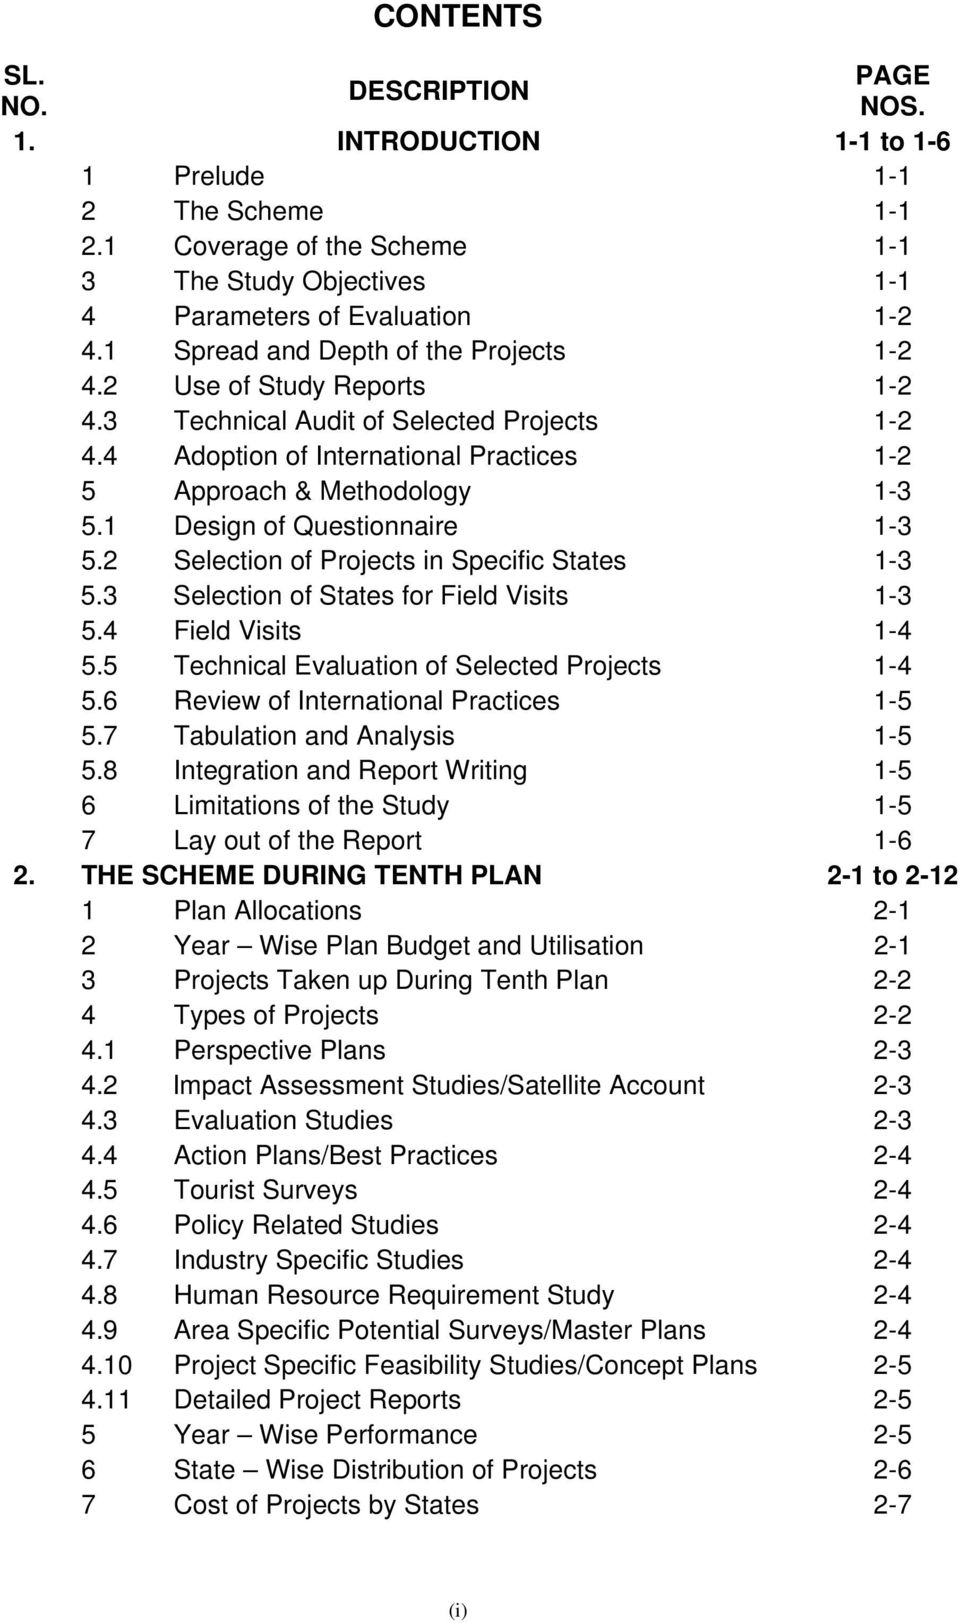 1 Design of Questionnaire 1-3 5.2 Selection of Projects in Specific States 1-3 5.3 Selection of States for Field Visits 1-3 5.4 Field Visits 1-4 5.5 Technical Evaluation of Selected Projects 1-4 5.